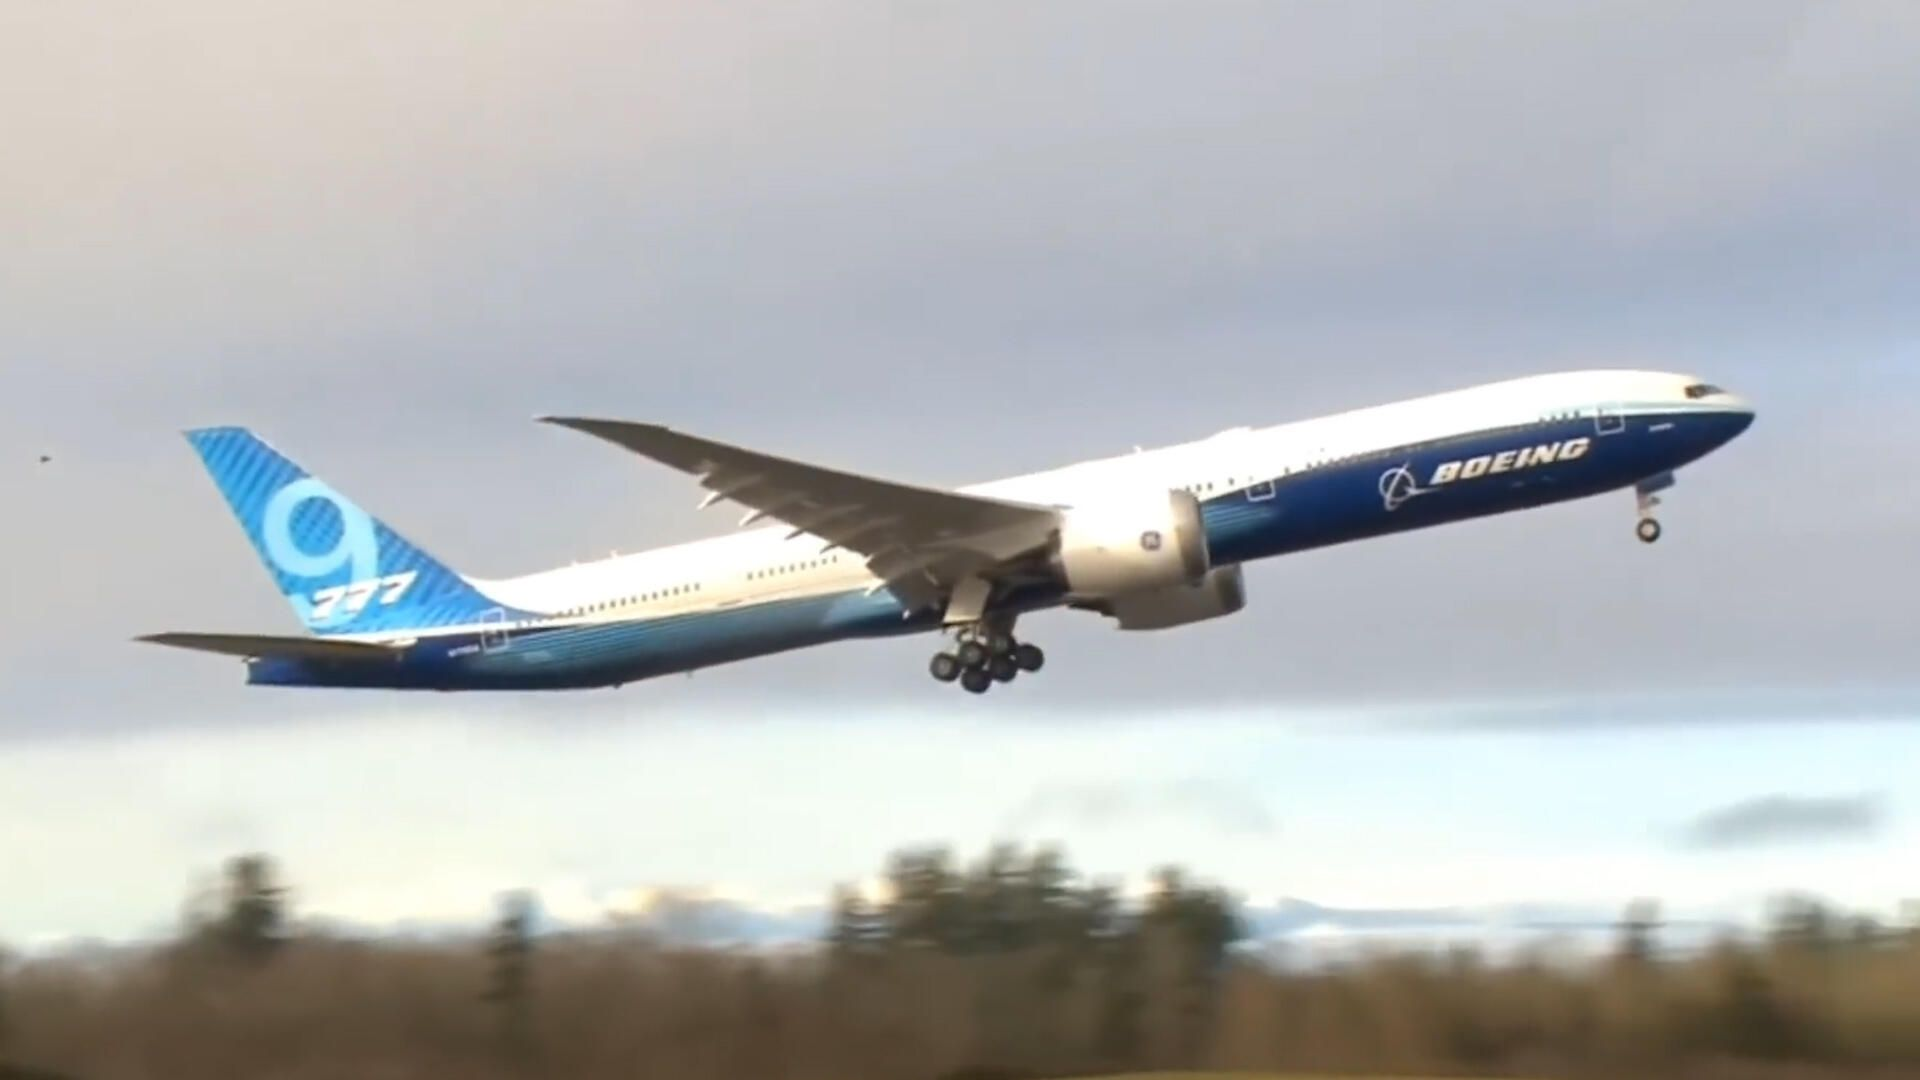 , Boeing's massive foldable-wing 777X jet completes its first test flight                                                                  9 great reads from CNET this week                                                                  Apple's abandoned encryption plan, Google changes search results                                                                  Rolls-Royce is reportedly building mini nuclear reactors                                                                  YouTube moderators must sign form acknowledging job can give them PTSD, report says                                                                  How to break up with Instagram                                                                  Pentagon blocked even tighter rules on Huawei sales, report says                                                                  5G's inconsistent rollout isn't limited to the US. Here's what it's like in the UK                                                                  Scooter app wars begin, and Lime isn't happy about it                                                                  Apple partners with gyms, Google's search change annoys some                                                                  Fake SWAT calls hit tech execs, report says                                                                  Will the iPhone 12 look like the iPhone 11? – Source CNET Tech, iBSC Technologies - learning management services, LMS, Wordpress, CMS, Moodle, IT, Email, Web Hosting, Cloud Server,Cloud Computing